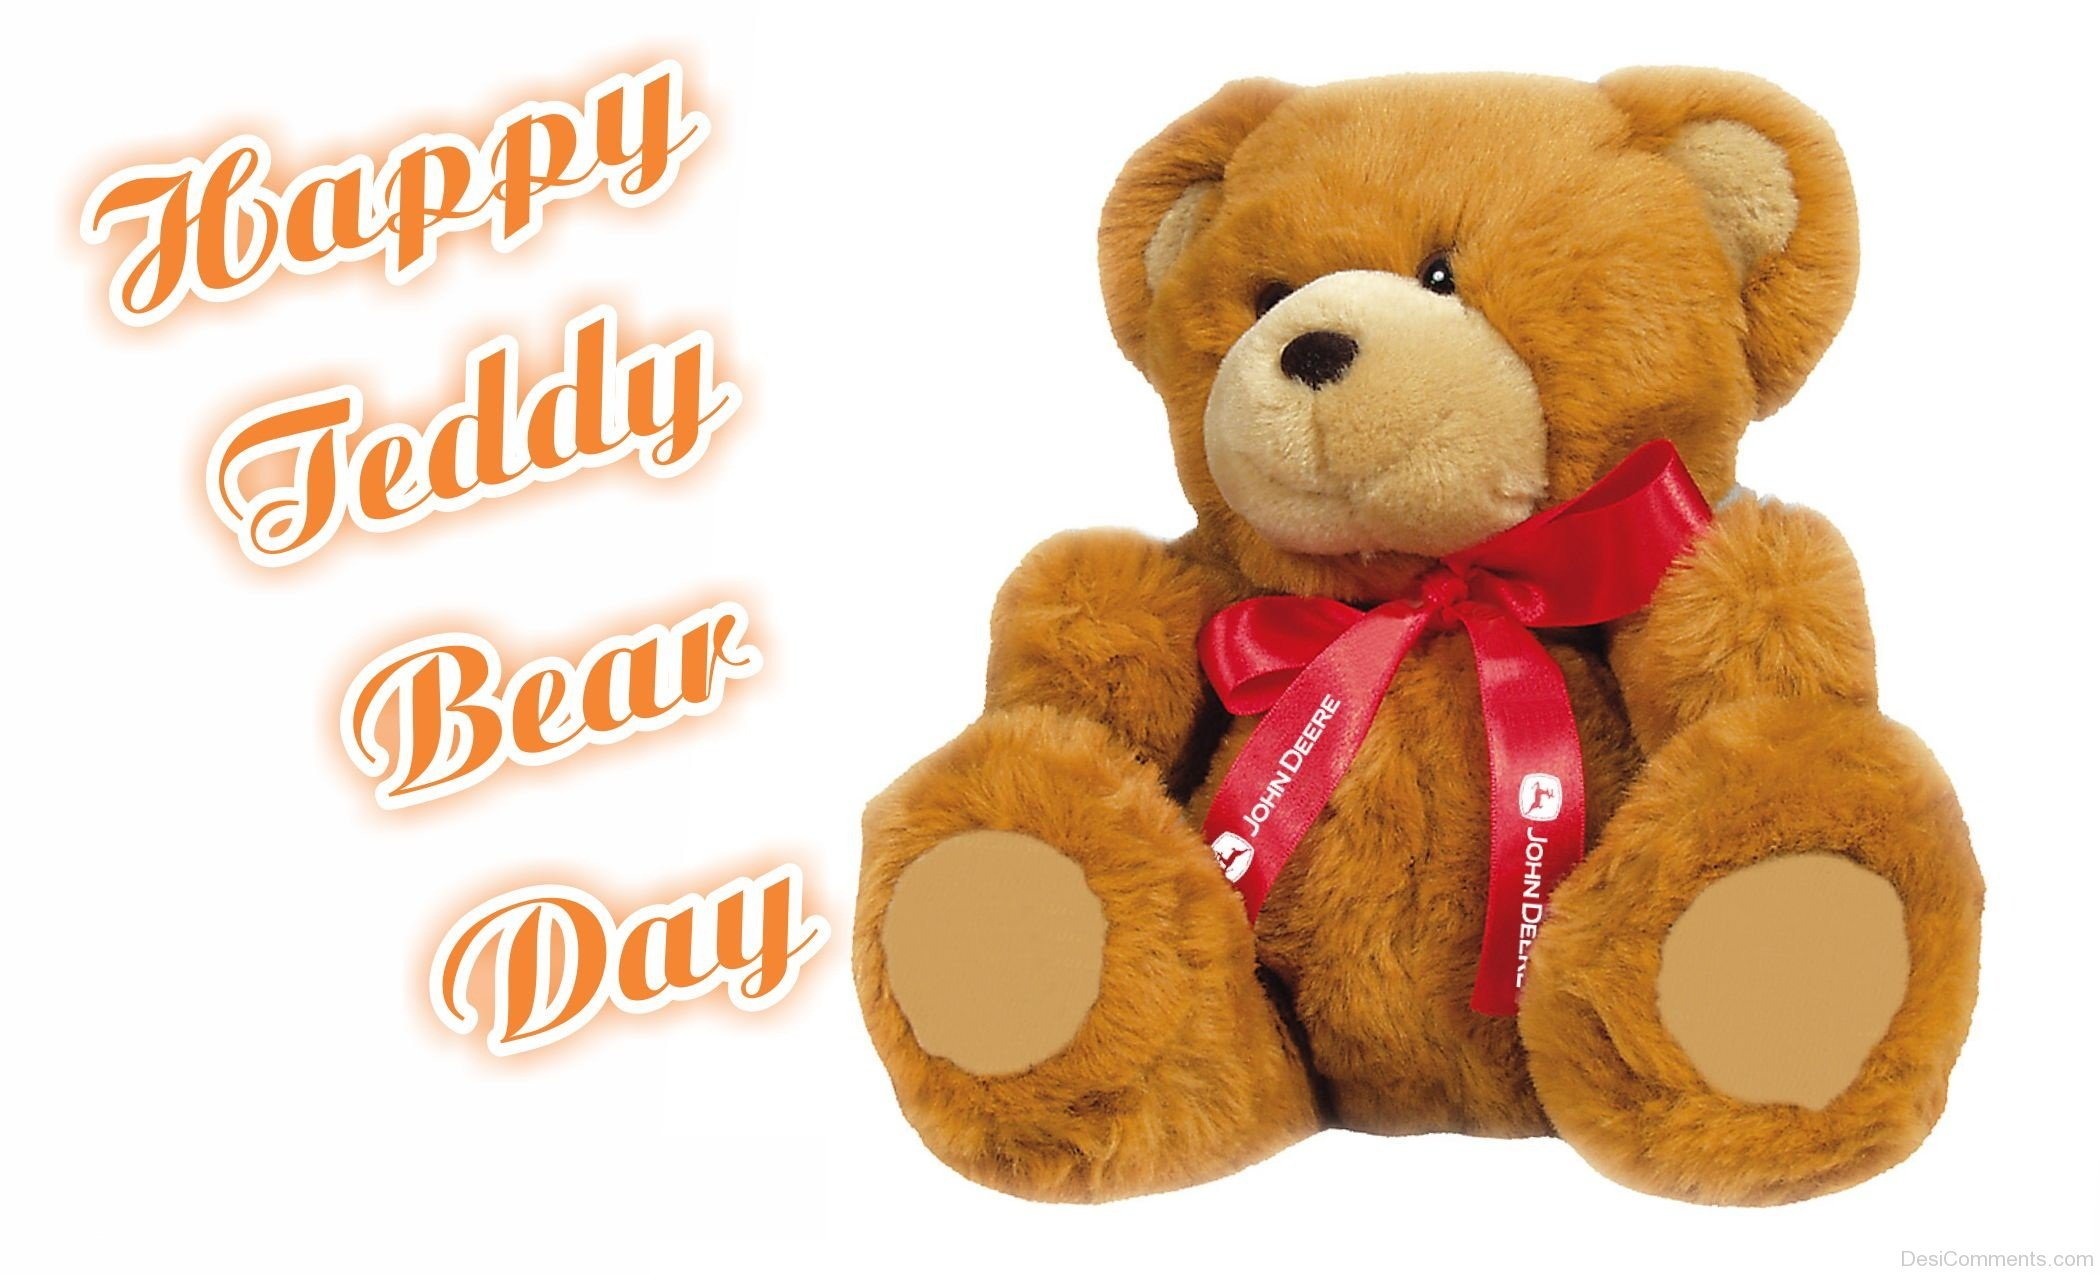 Theodore Roosevelt Wallpaper Quote Happyteddy Bear Day